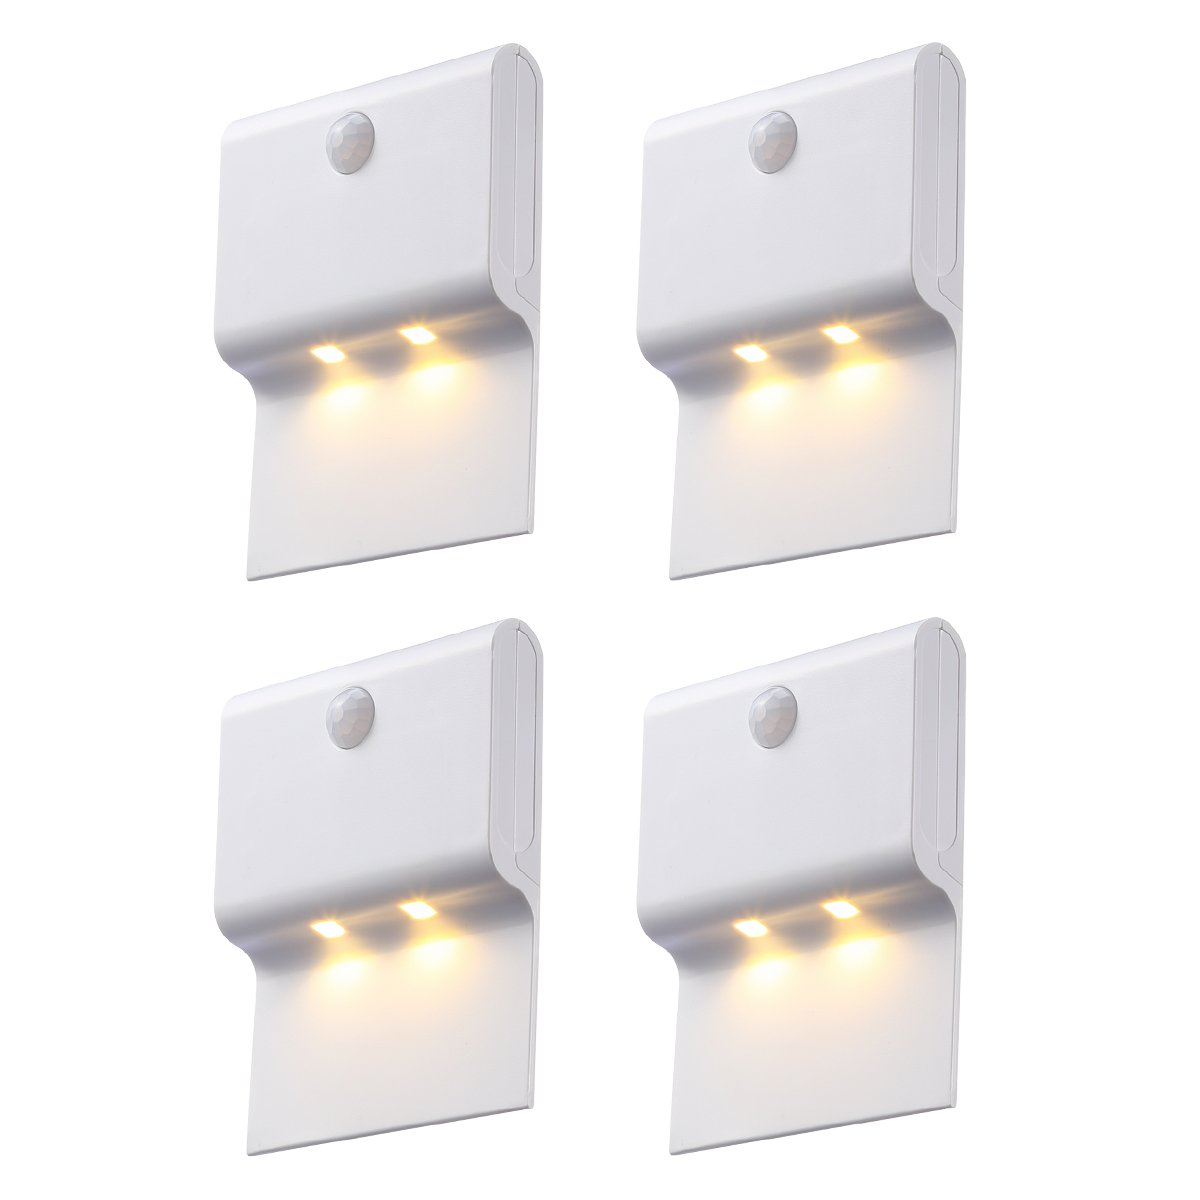 AMIR Motion Sensor Night Light, 2-LED Wireless Hanging Wall Night Lamp, Stick Anywhere, Auto On/Off PIR Detection for Hallway, Staircase, Corridor, Wall, Kitchen, Battery Powered (White – Pack of 4)